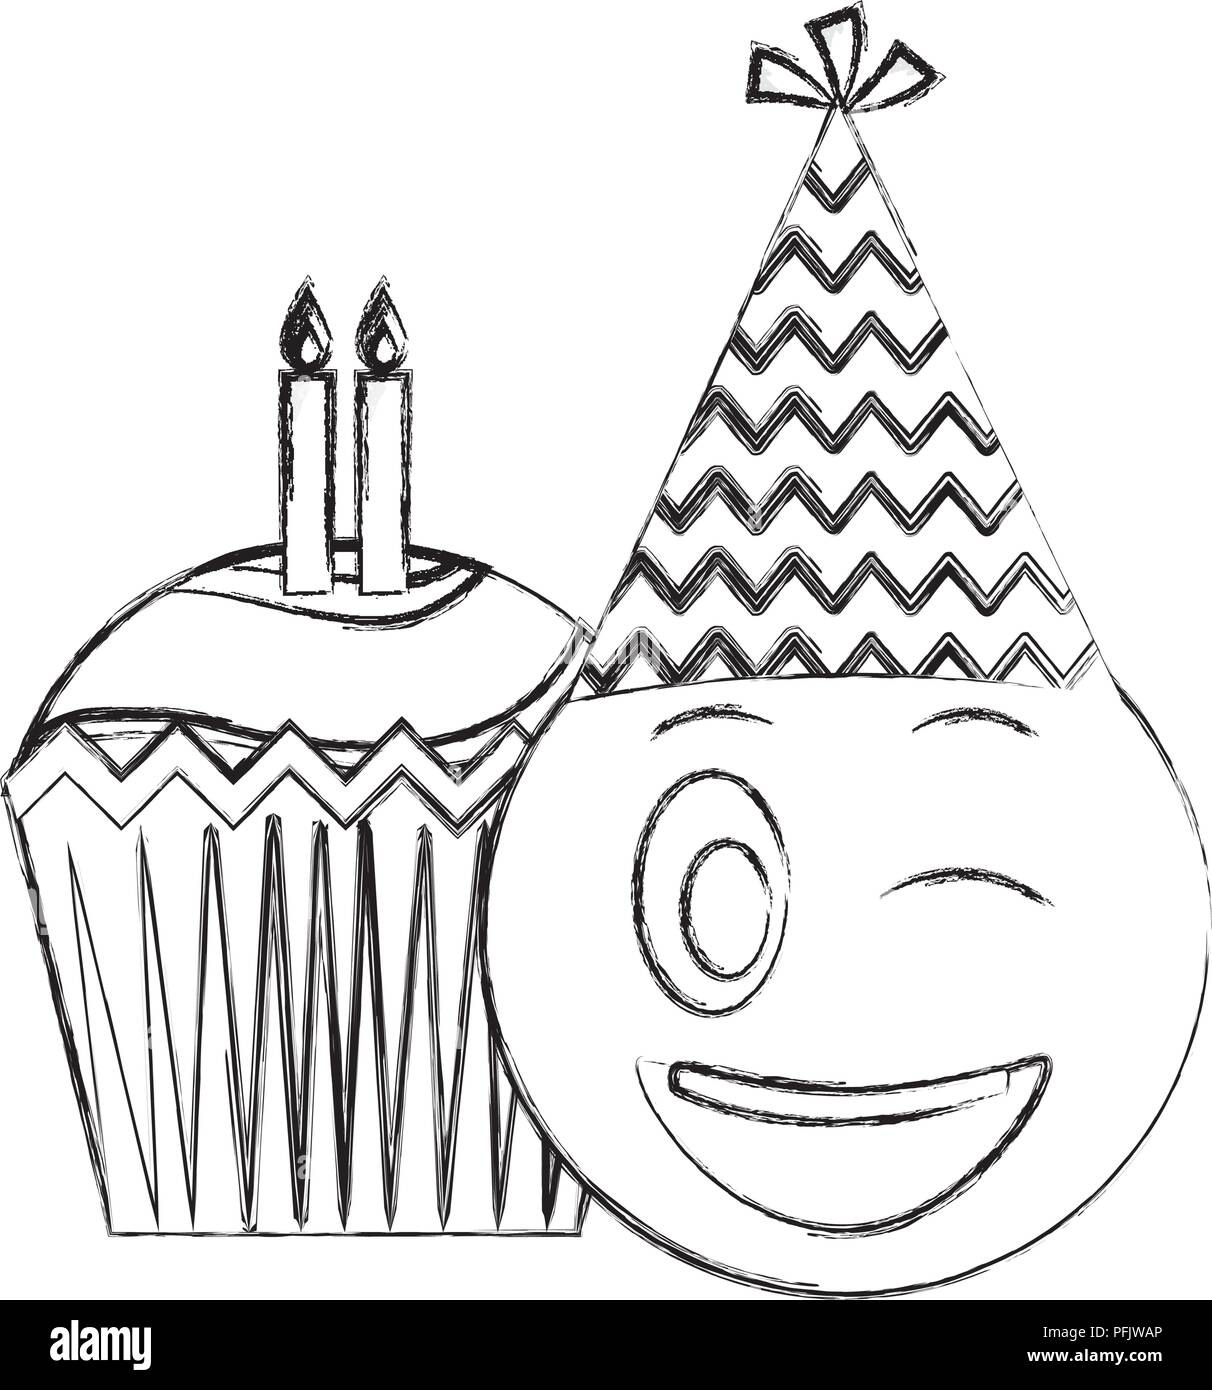 Birthday Emoji With Party Hat And Cupcakes Candles Hand Drawing